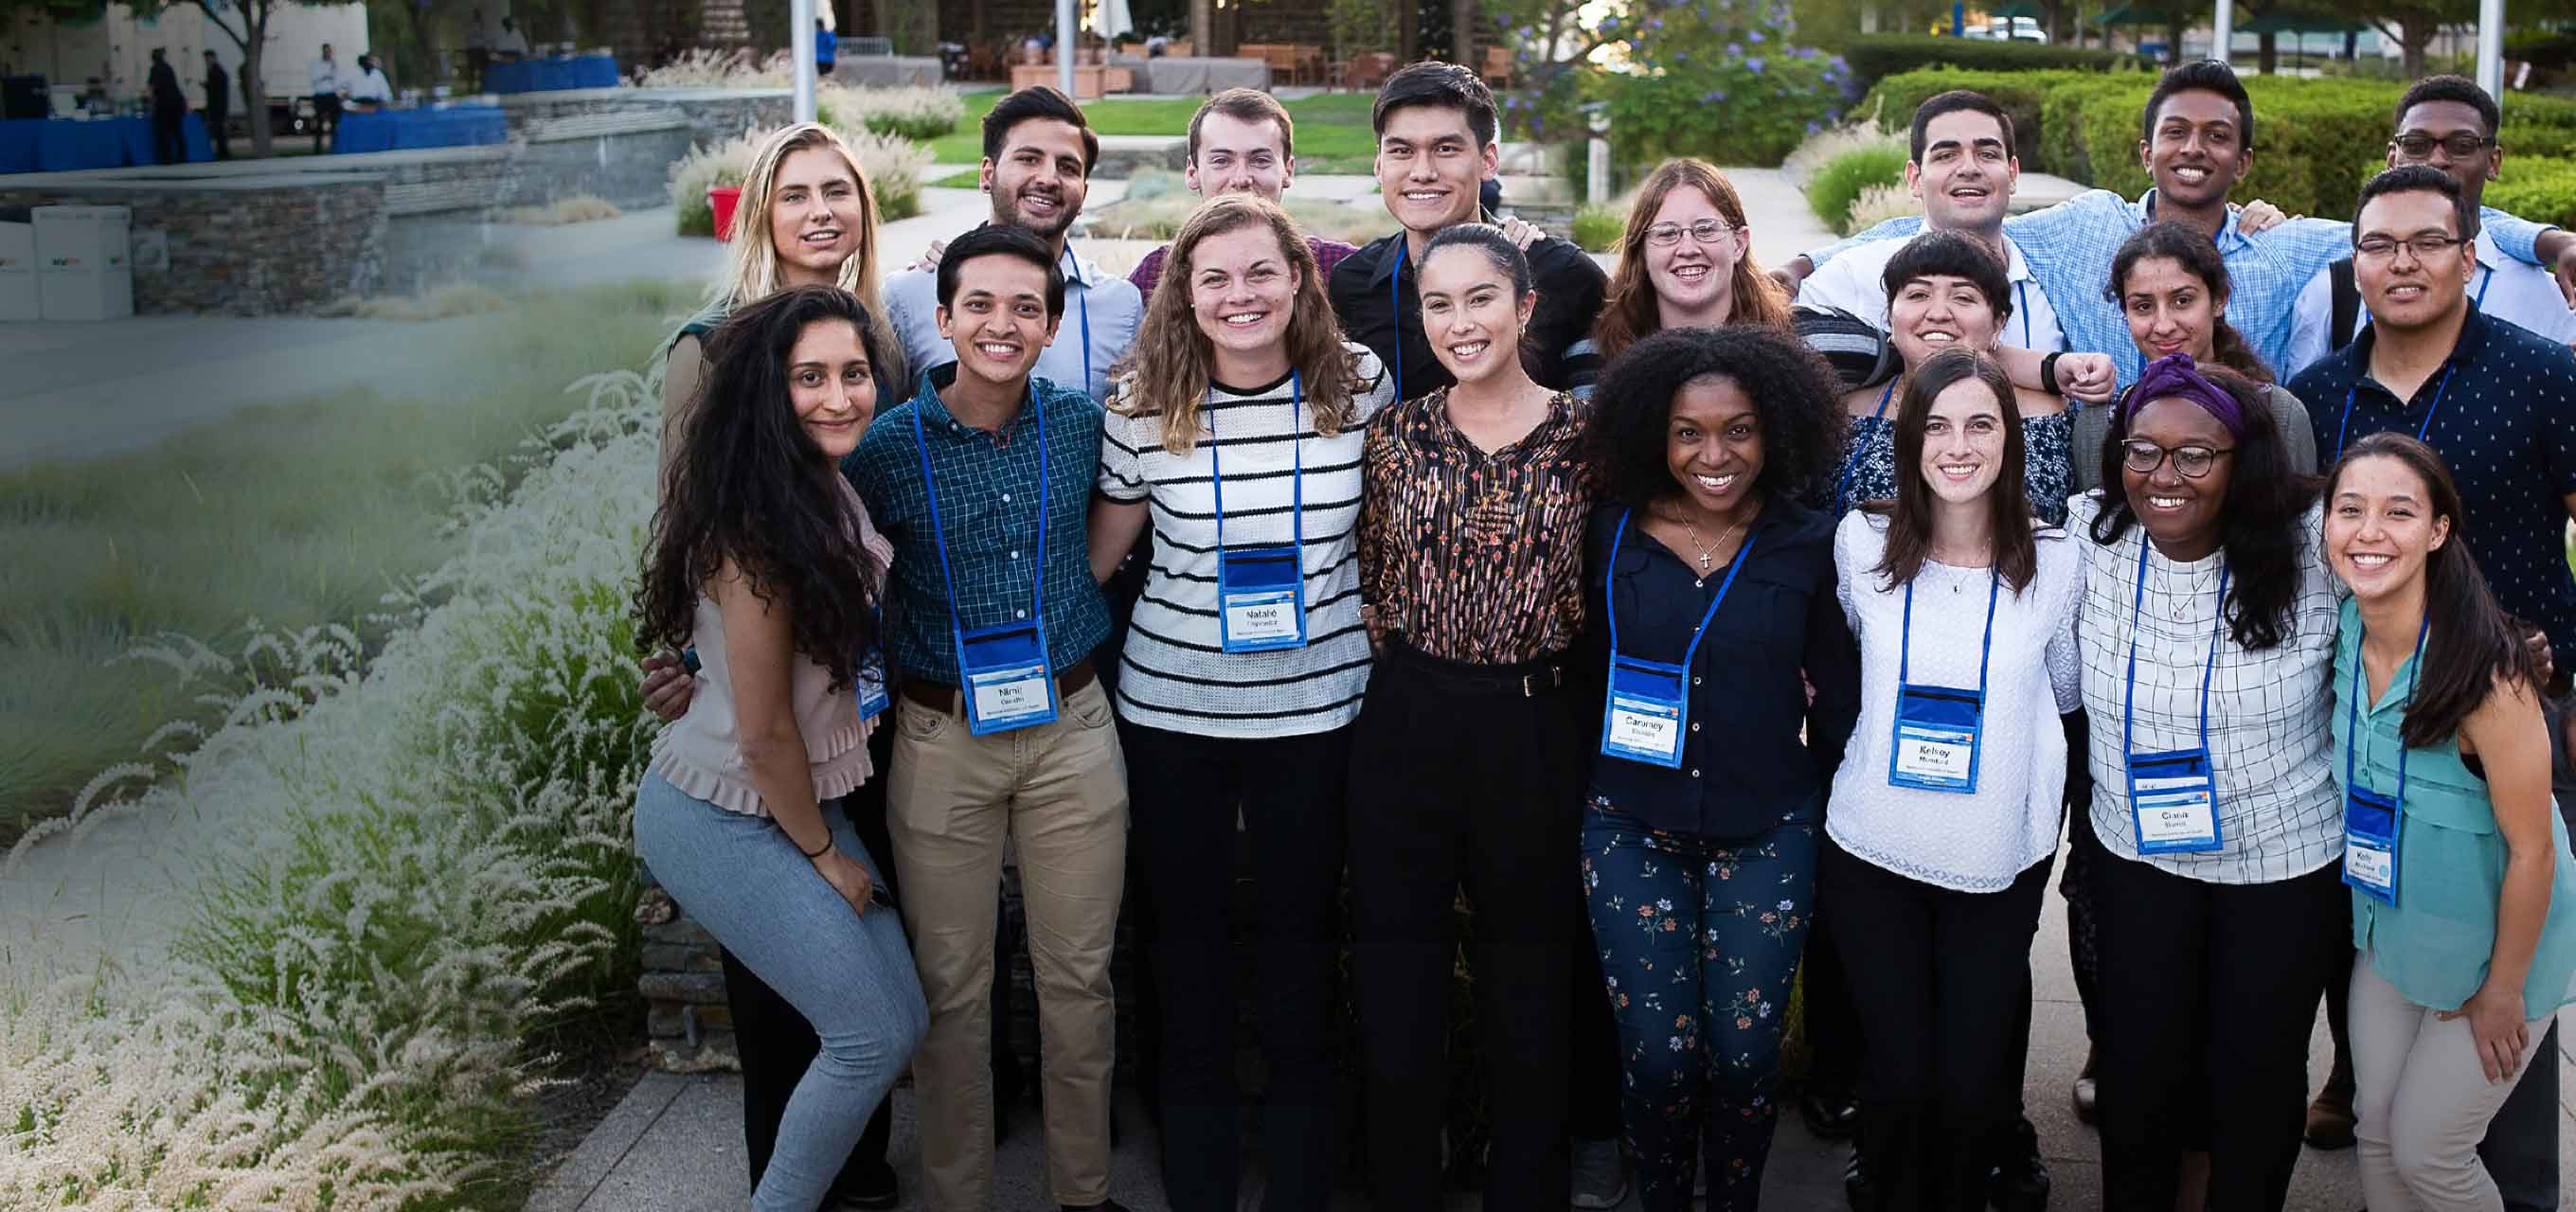 Amgen Scholars have represented more than 750 colleges and universities to date